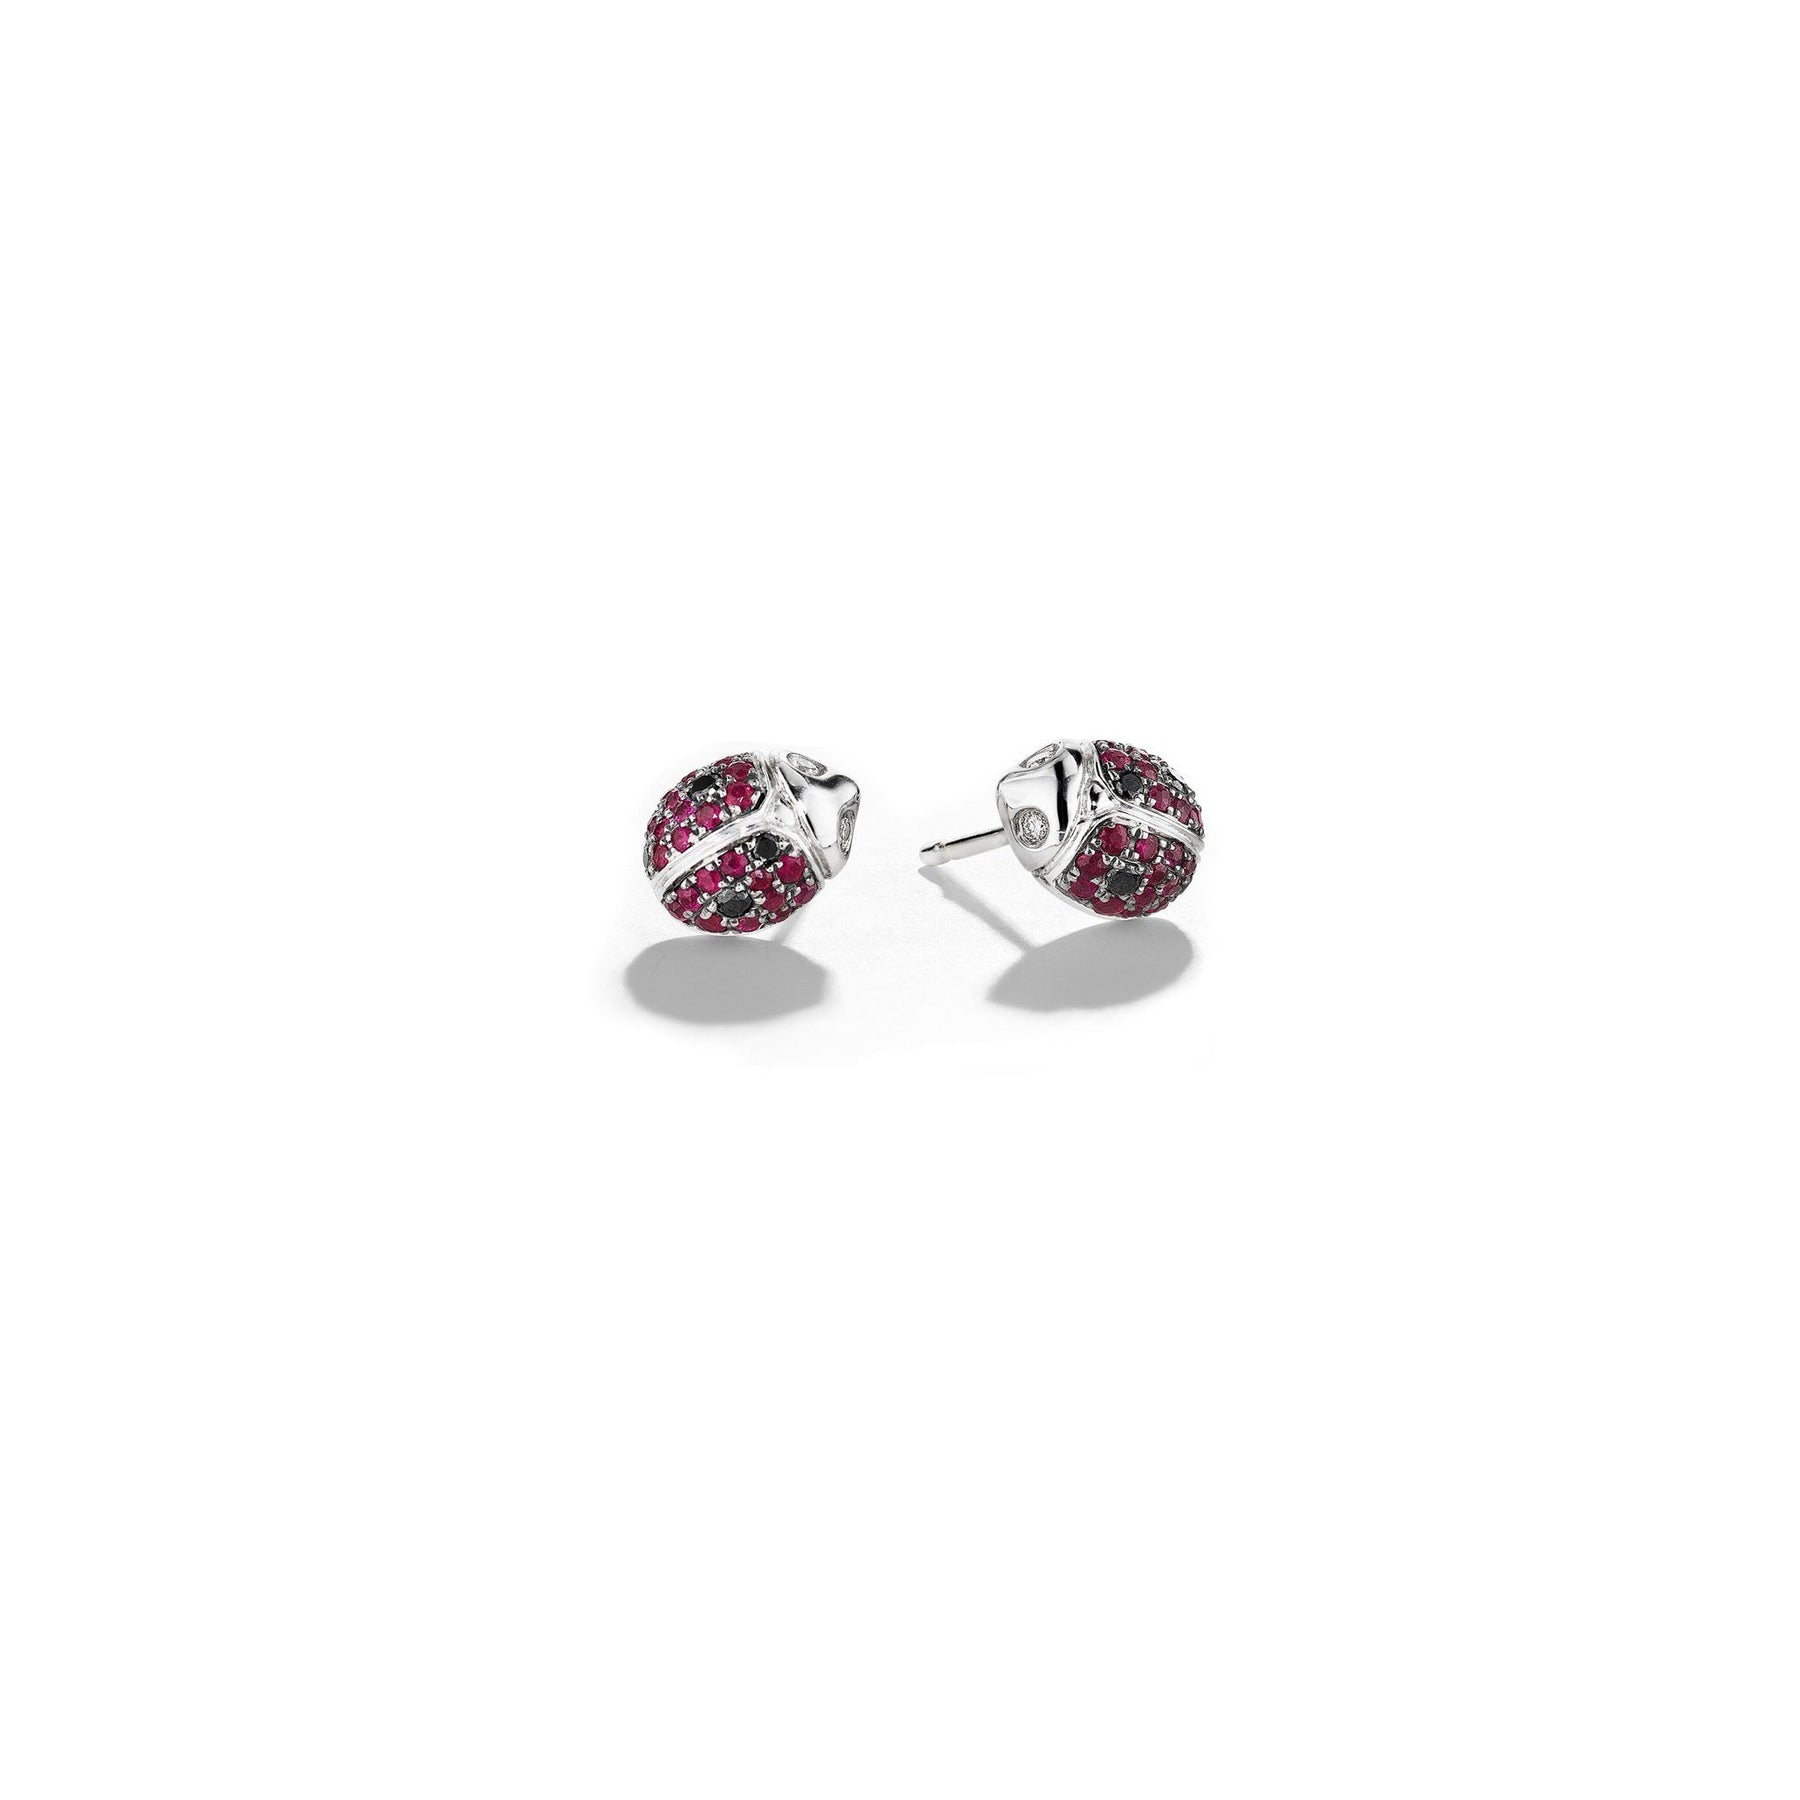 Ruby-Ladybug-Single-Stud-Earrings_18k White/Black Gold